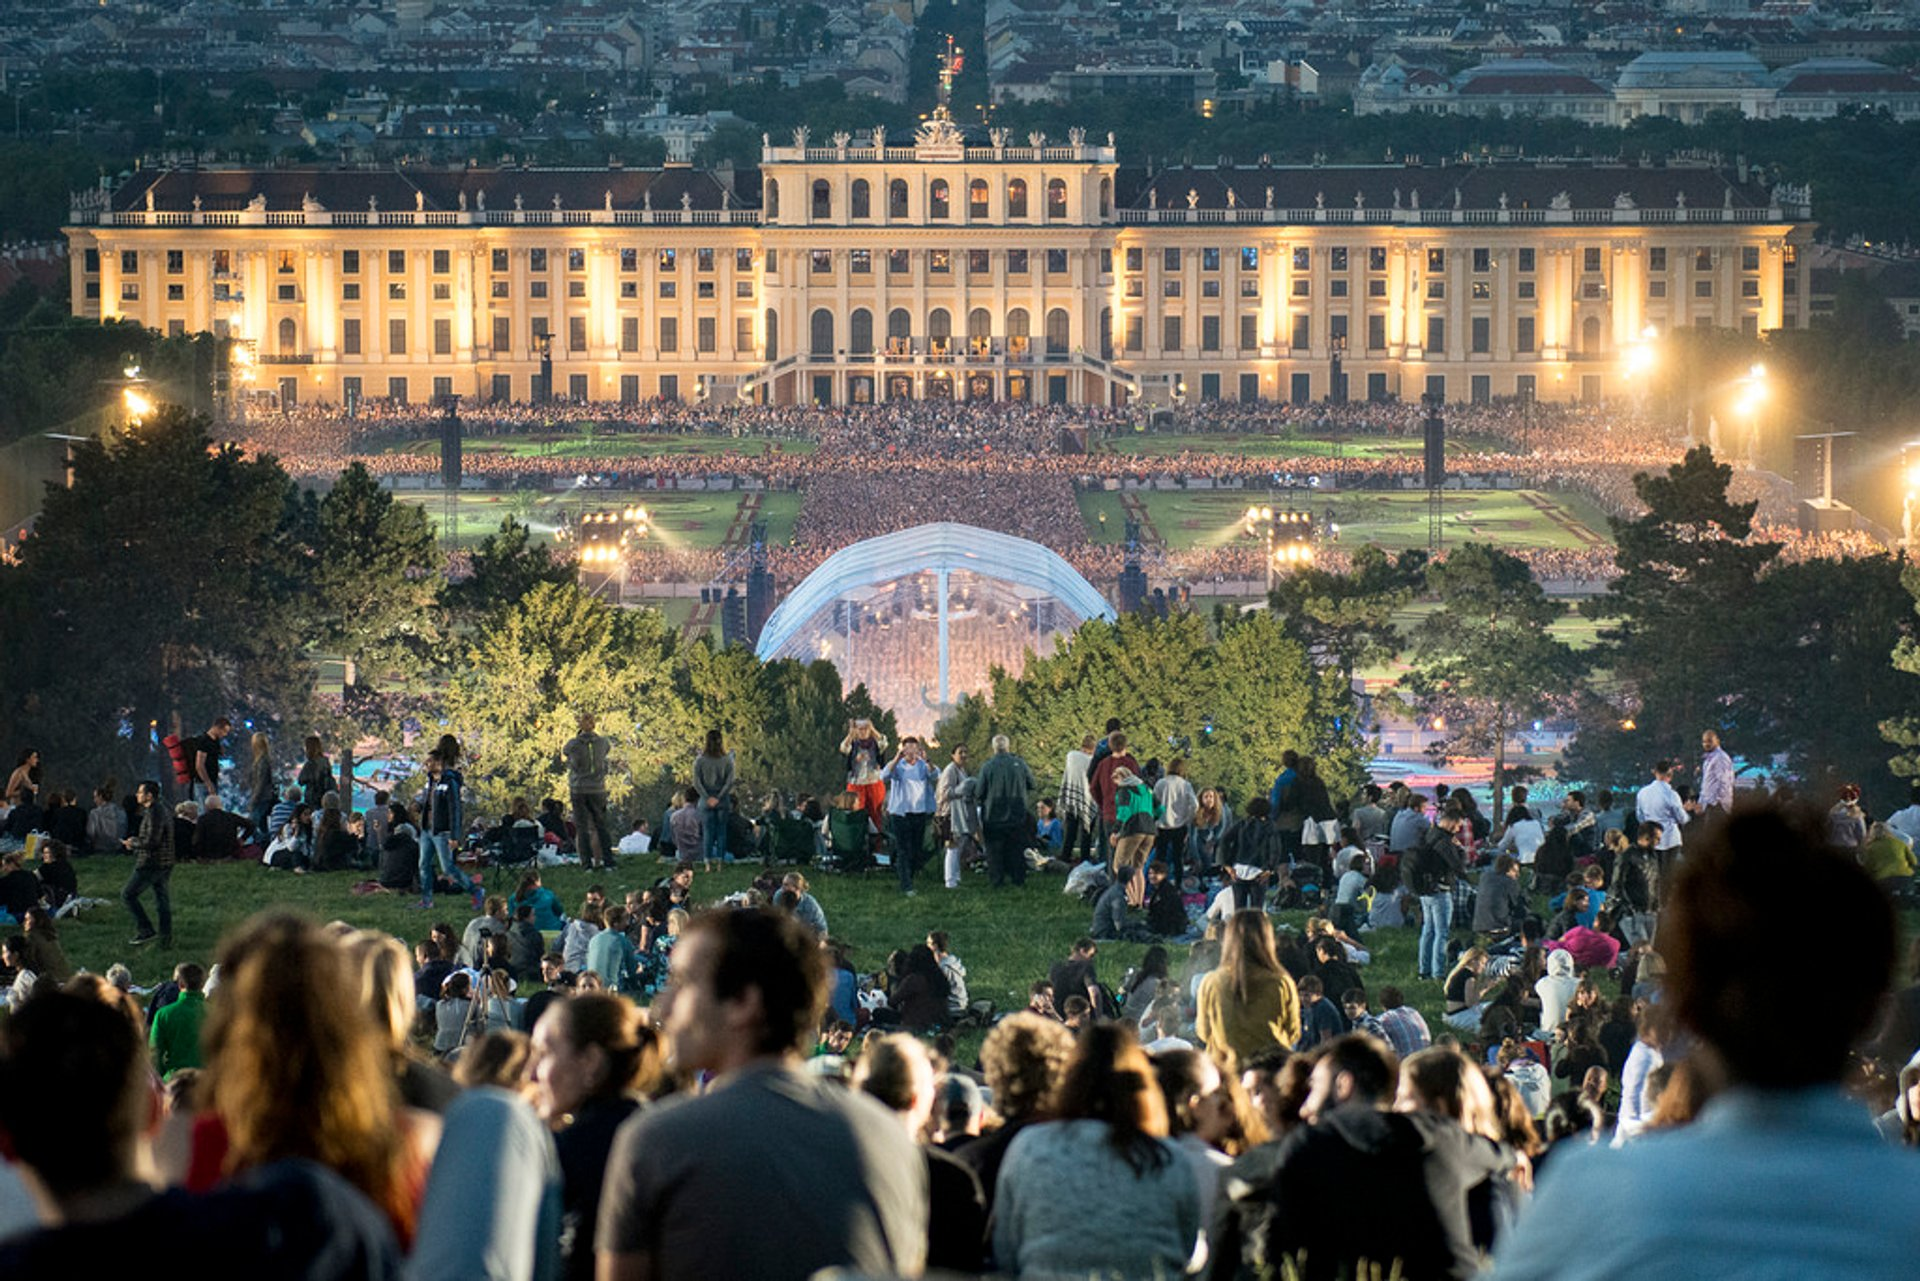 Vienna Philharmonic Summer Night Concert (Sommernachtskonzert) in Vienna 2020 - Best Time